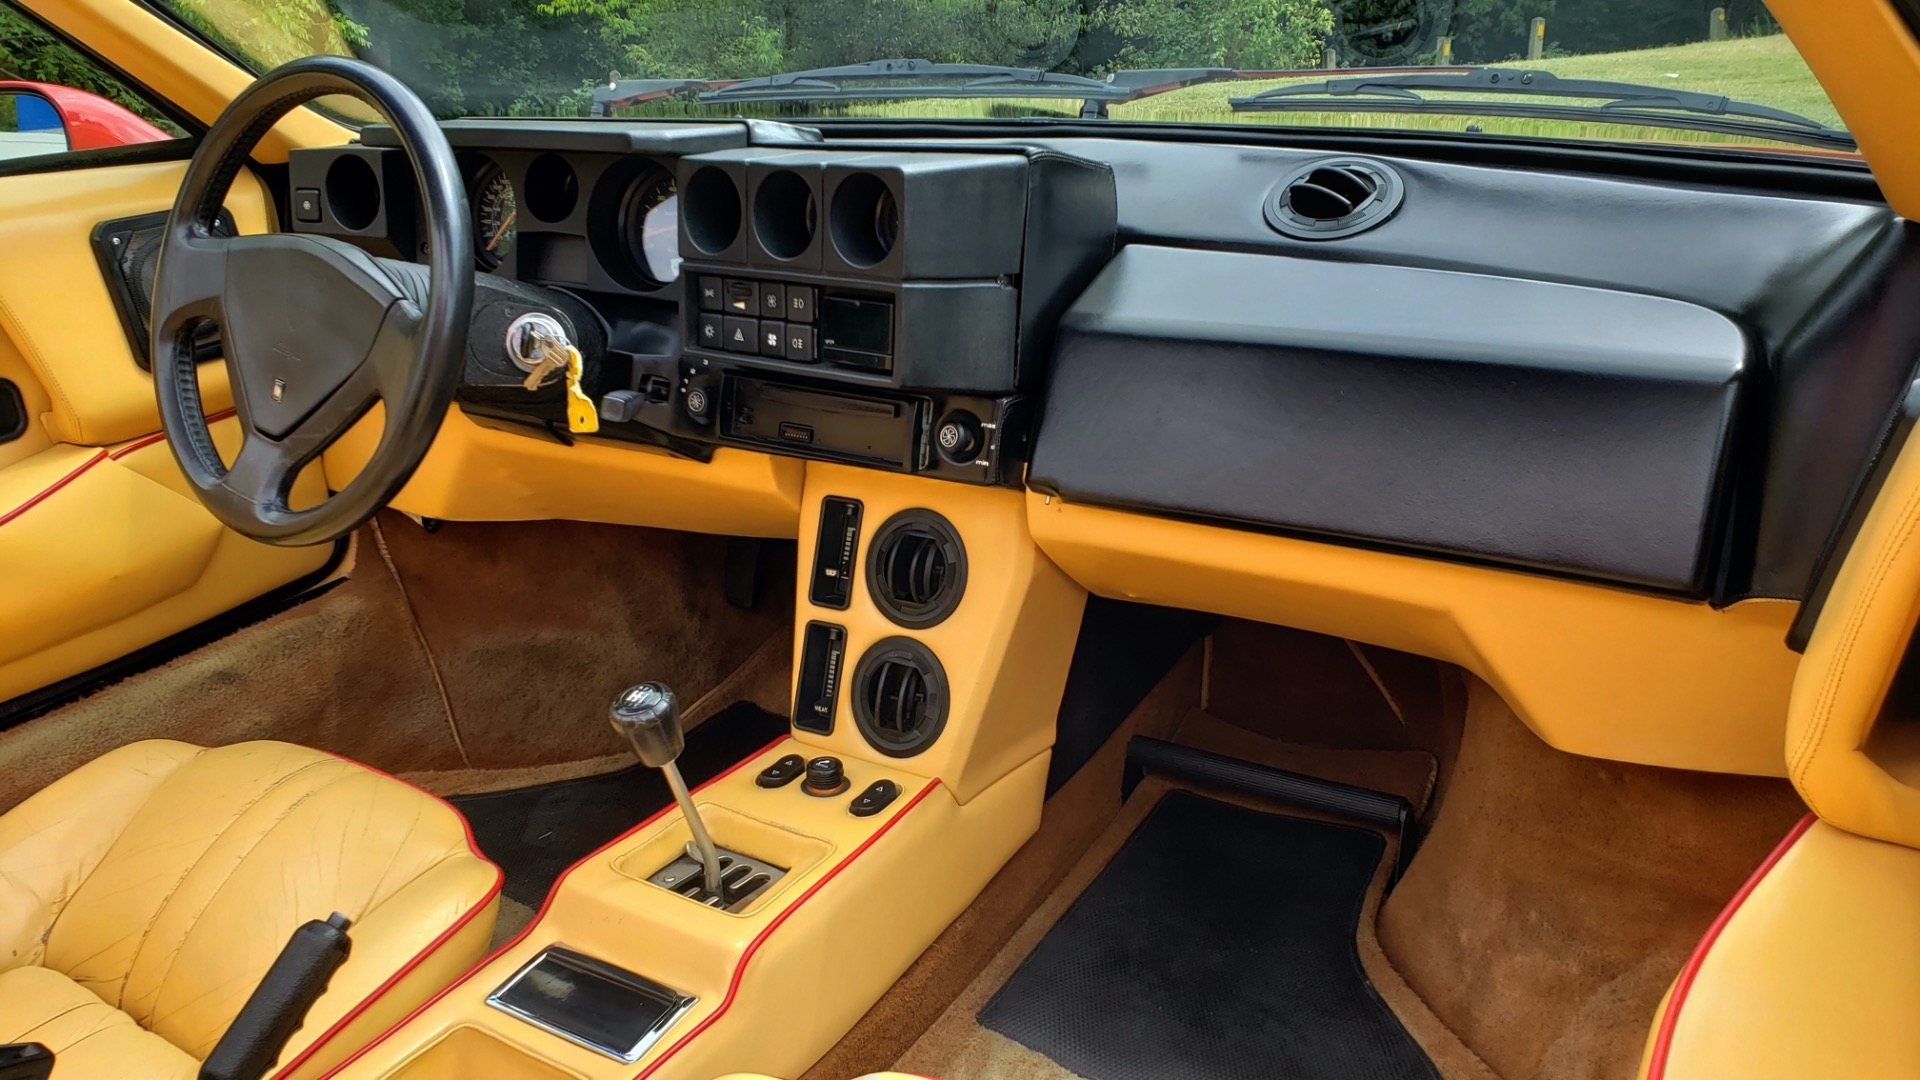 Used 1988 Lamborghini Jalpa 3.5 / 5-Speed Man / Low Miles / Excellent Condition for sale $108,995 at Formula Imports in Charlotte NC 28227 51